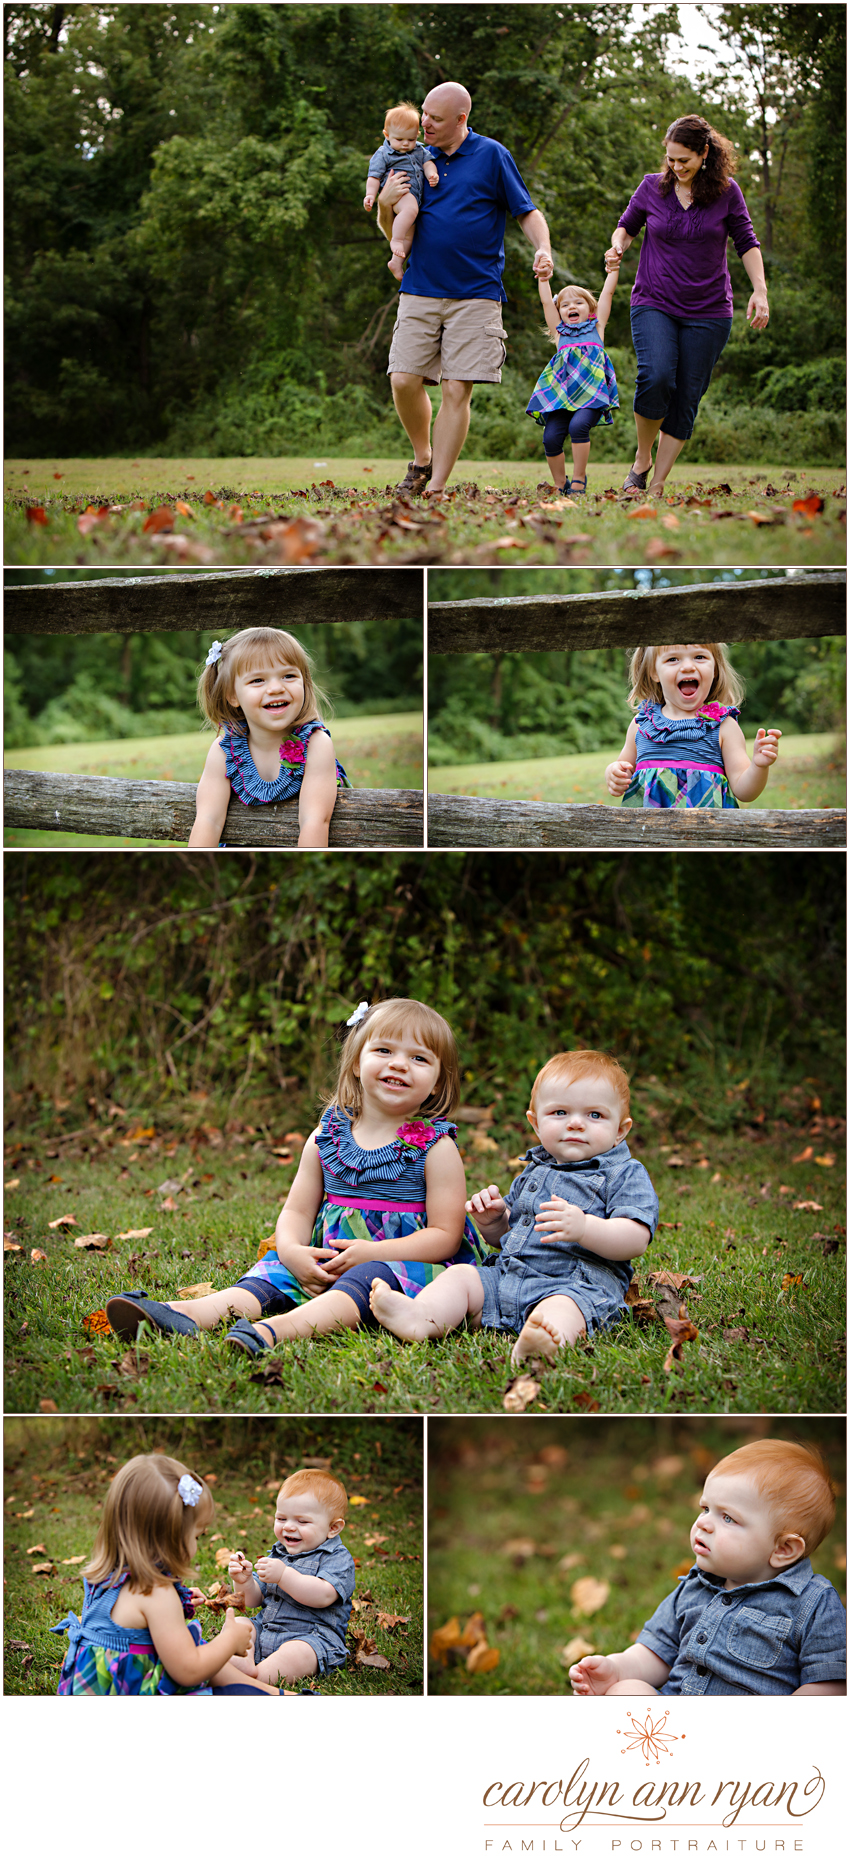 Darling Charlotte, NC Family Photography - Portrait Session photographed by Carolyn Ann Ryan